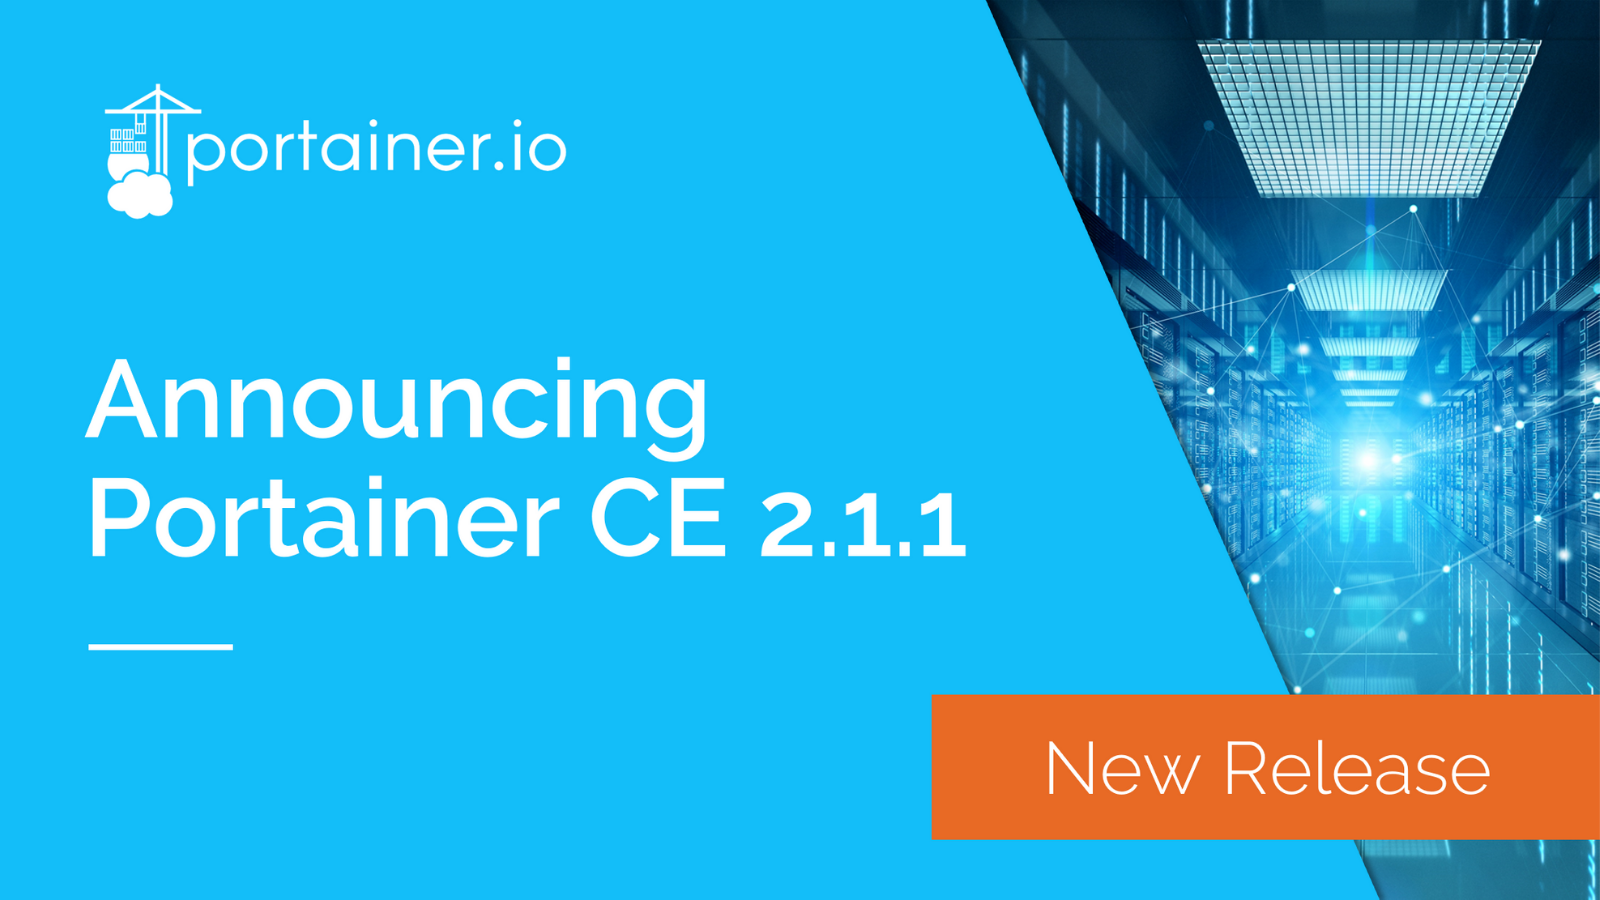 New Portainer CE 2.1.1 Release - now with support for Compose >3 in standalone hosts, and Compose 3.8 for Swarm